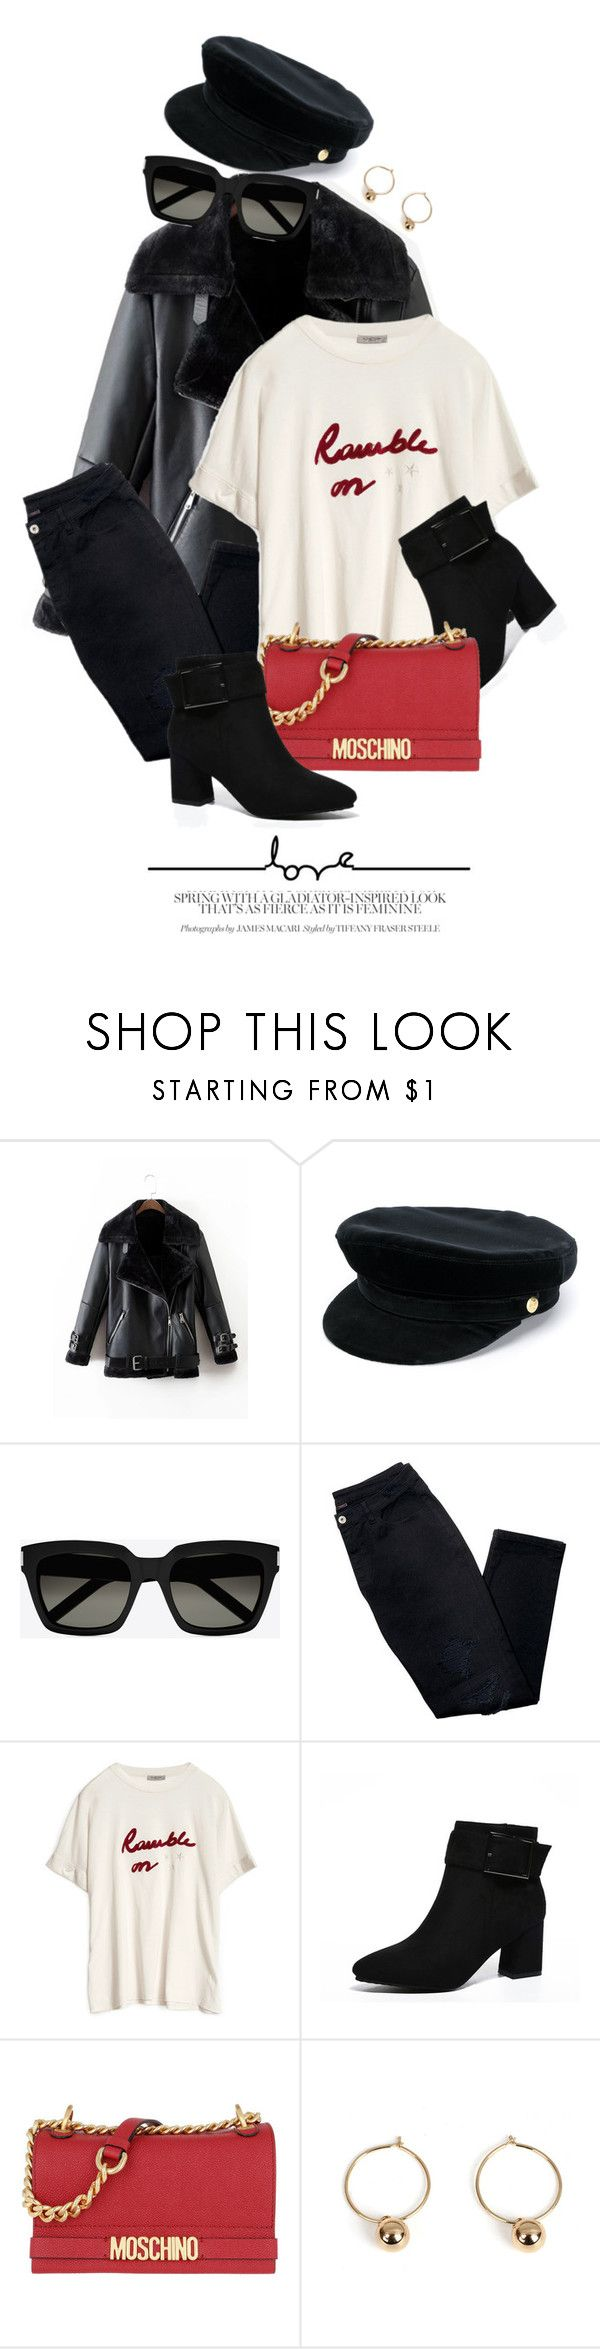 """""""Feb 21"""" by monmondefou ❤ liked on Polyvore featuring Manokhi, Yves Saint Laurent, Avon and Moschino"""